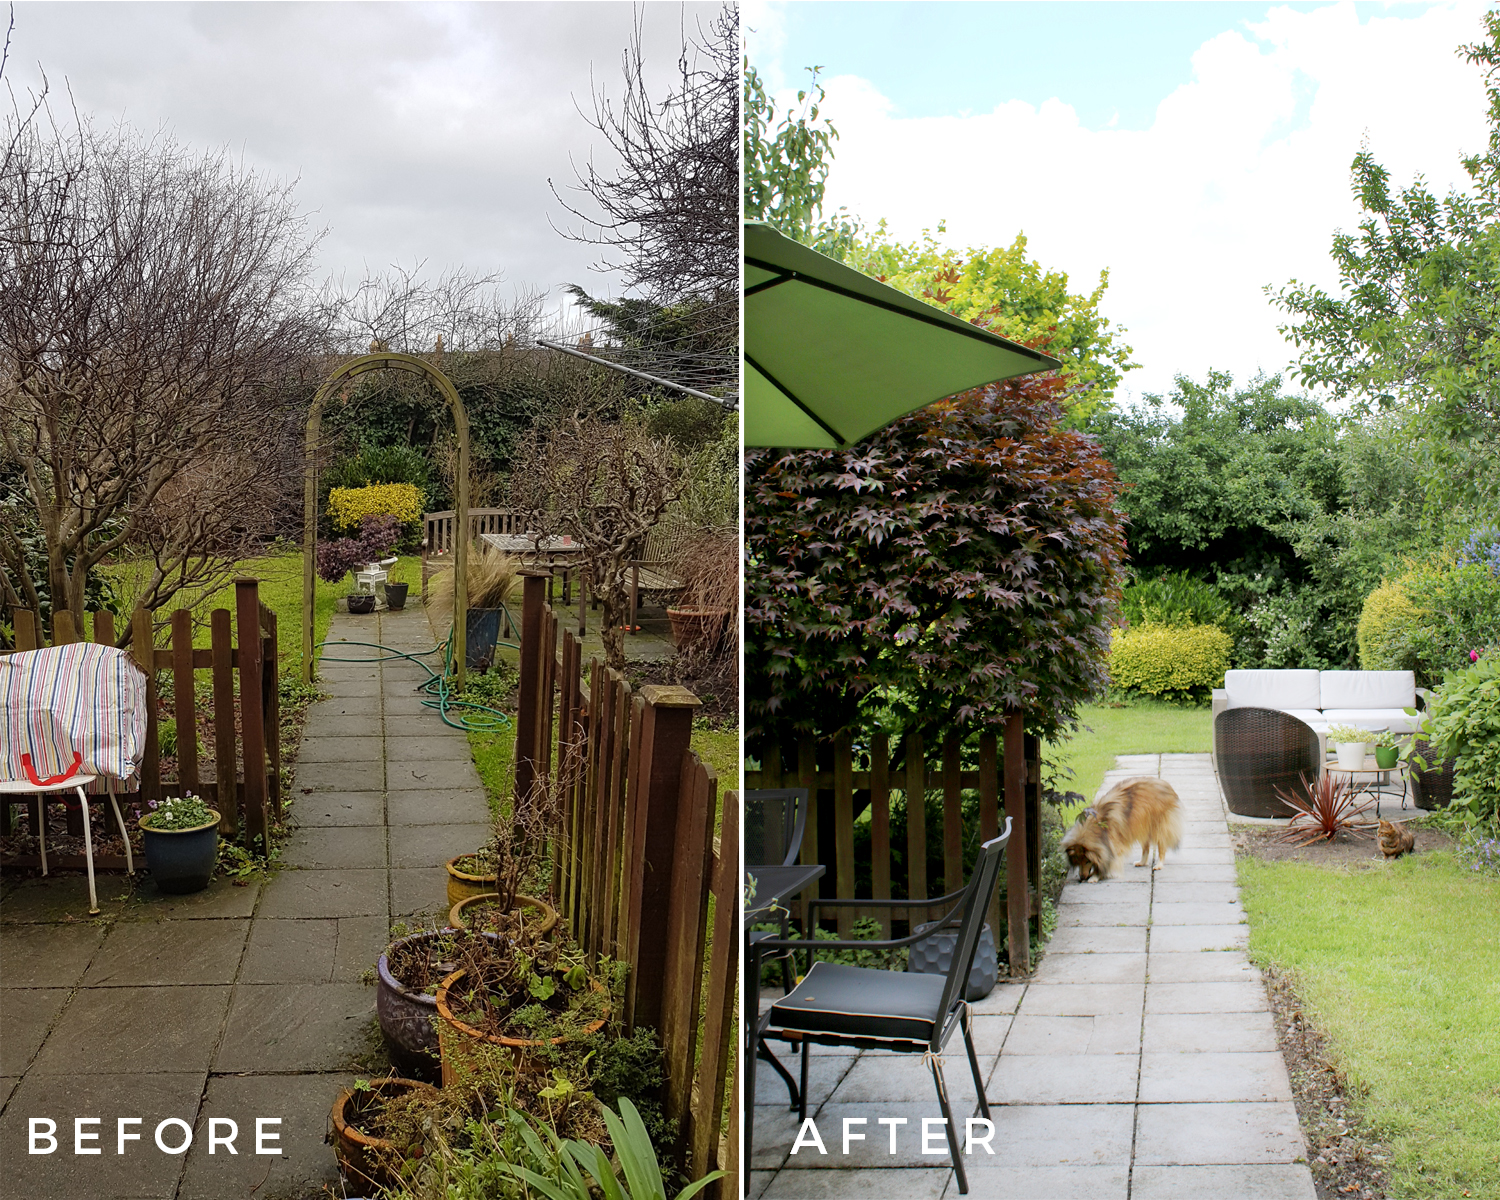 Garden before and after Jan 2018 to Jun 2018